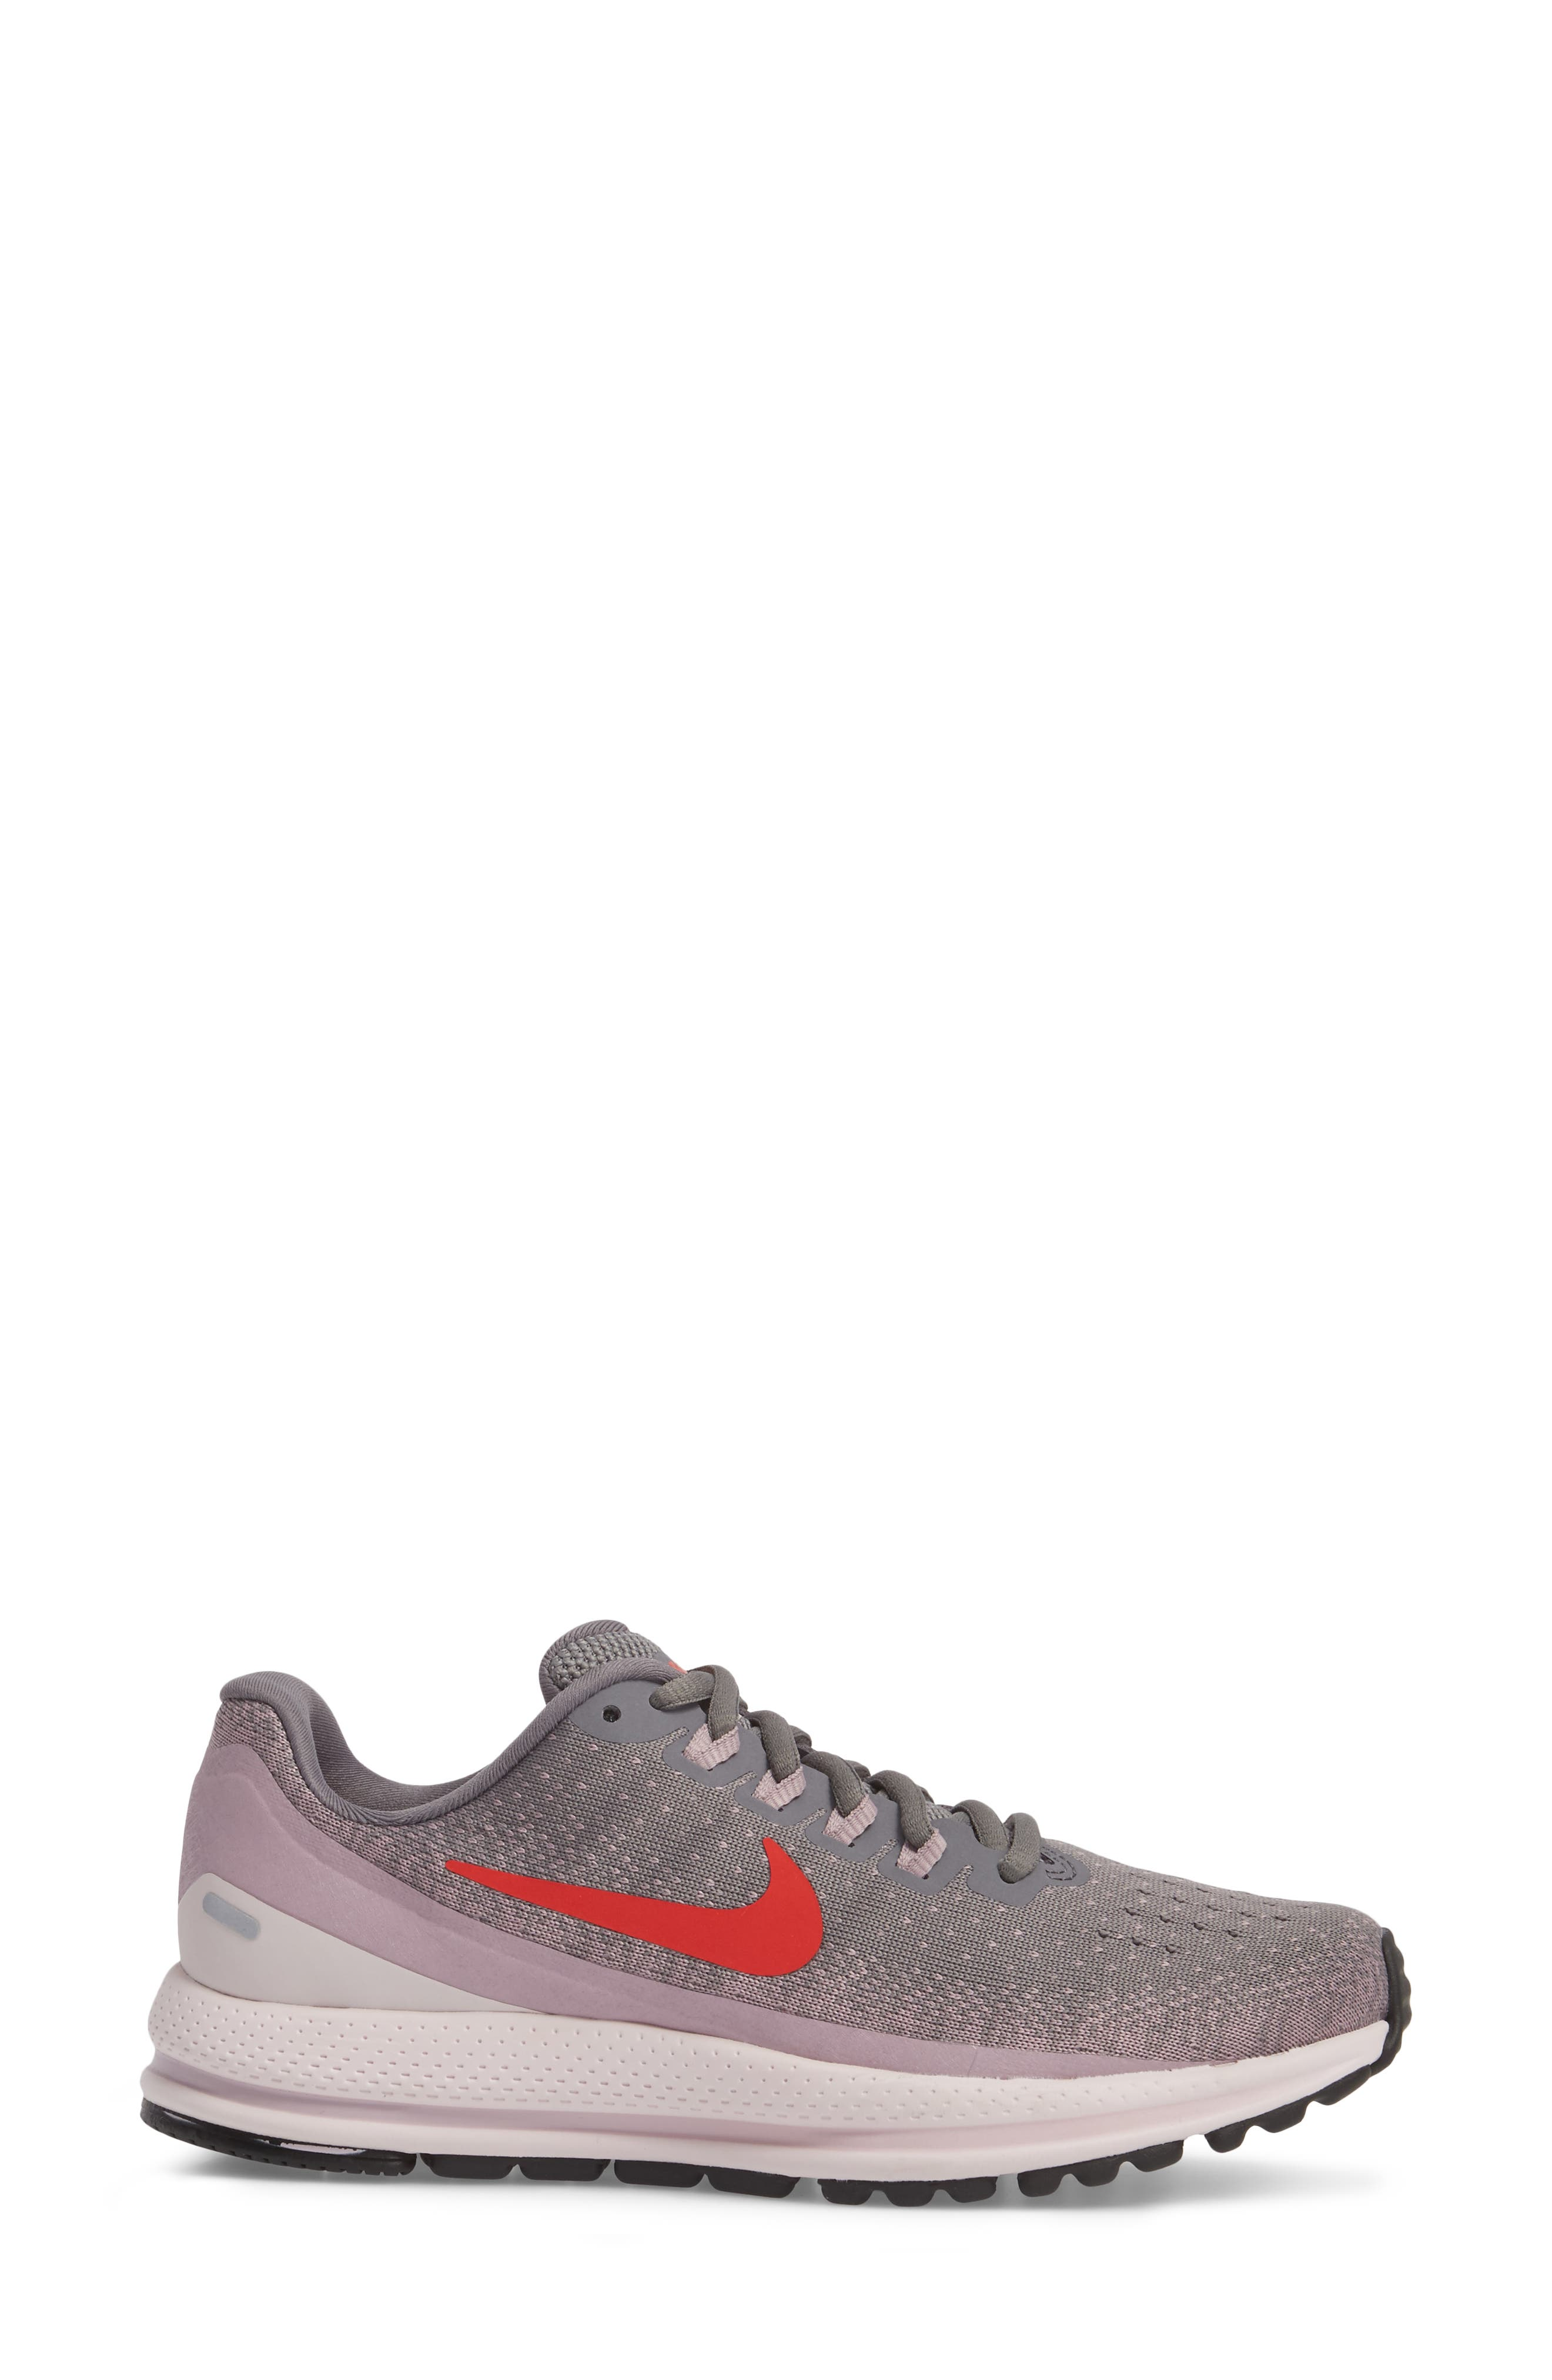 Air Zoom Vomero 13 Running Shoe,                             Alternate thumbnail 24, color,